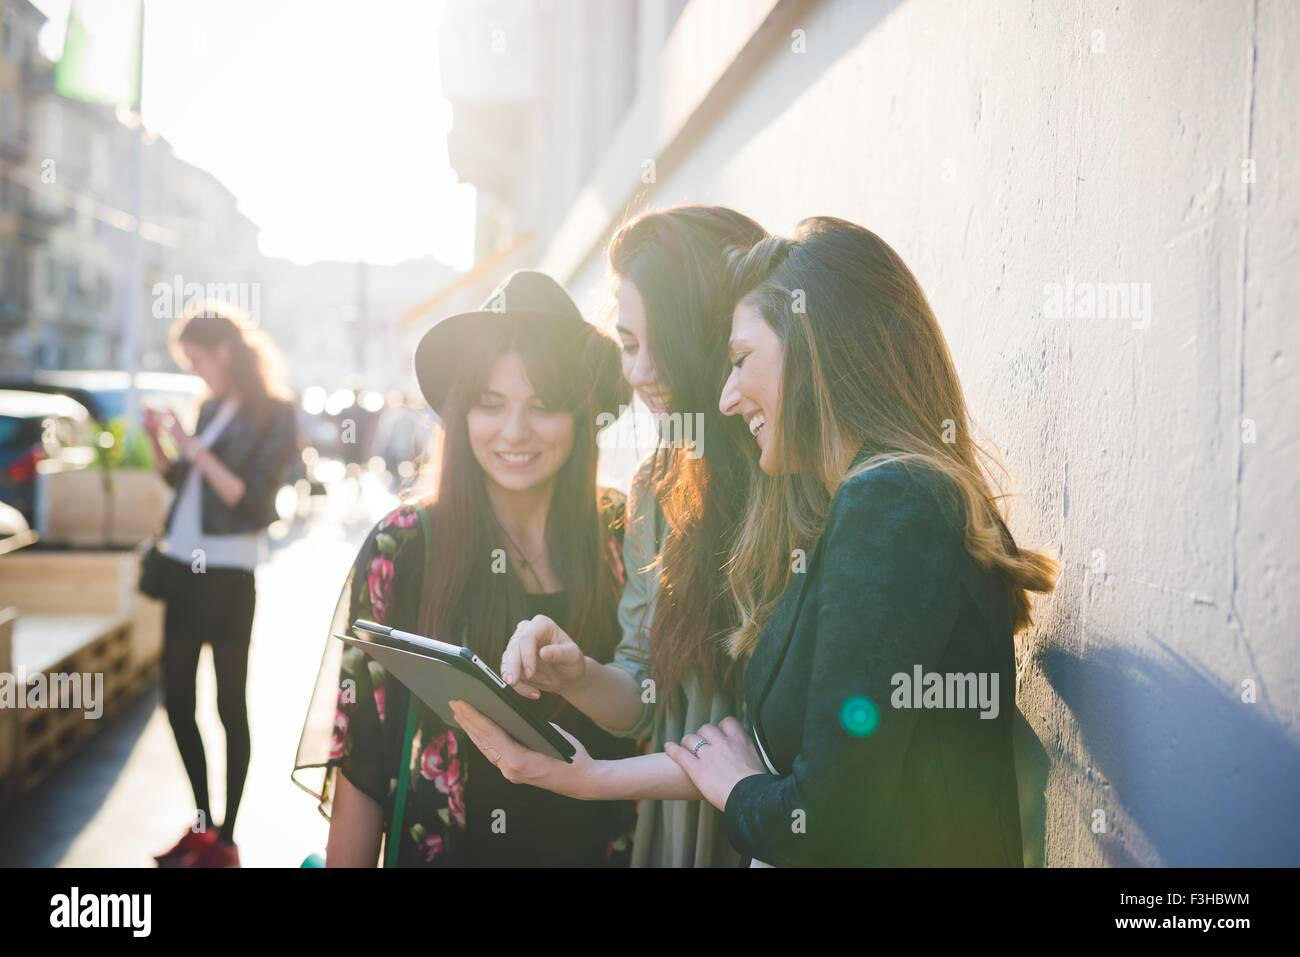 Three young women using digital tablet on city street Stock Photo